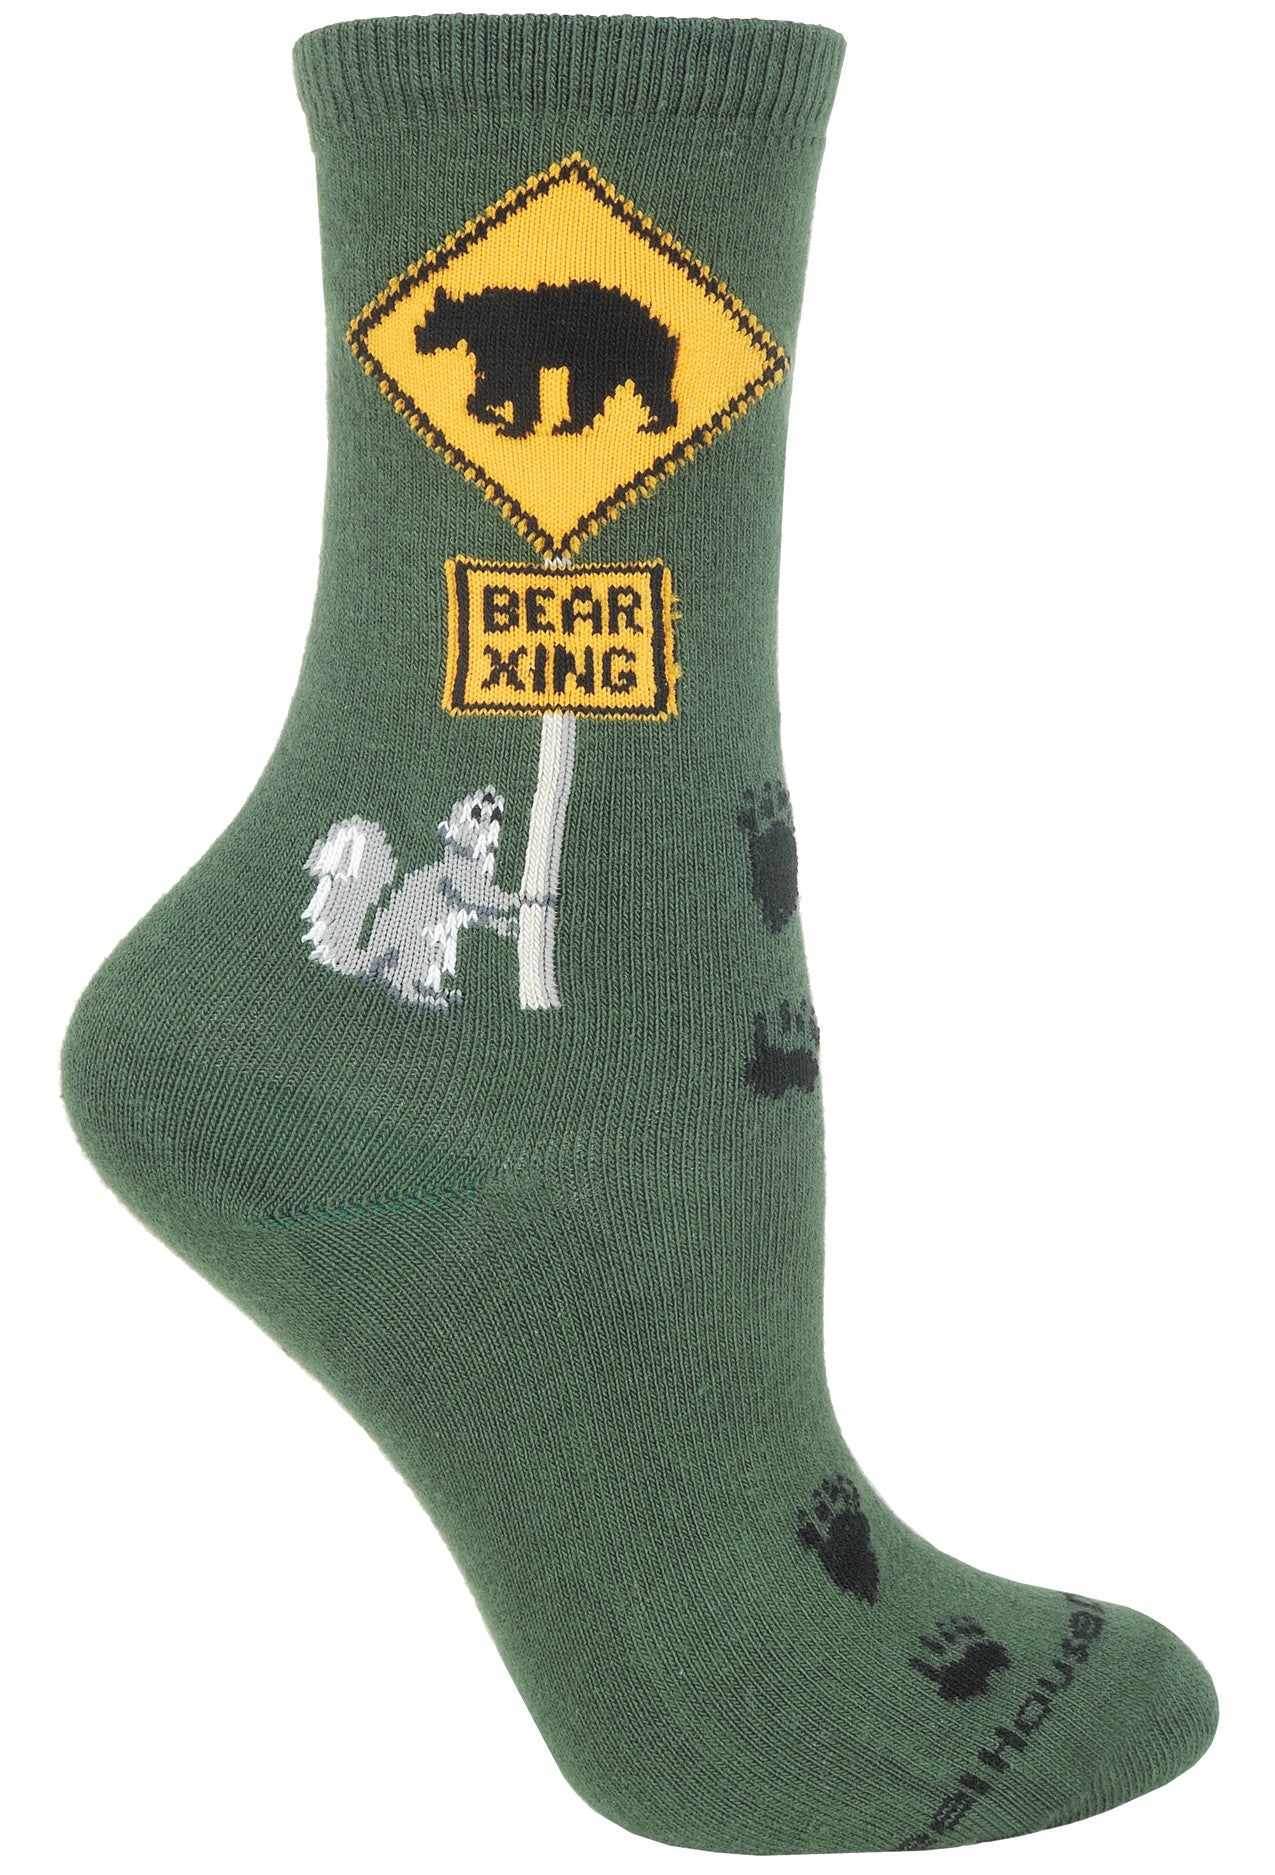 Bear Xing Crew Socks on Hunter Green